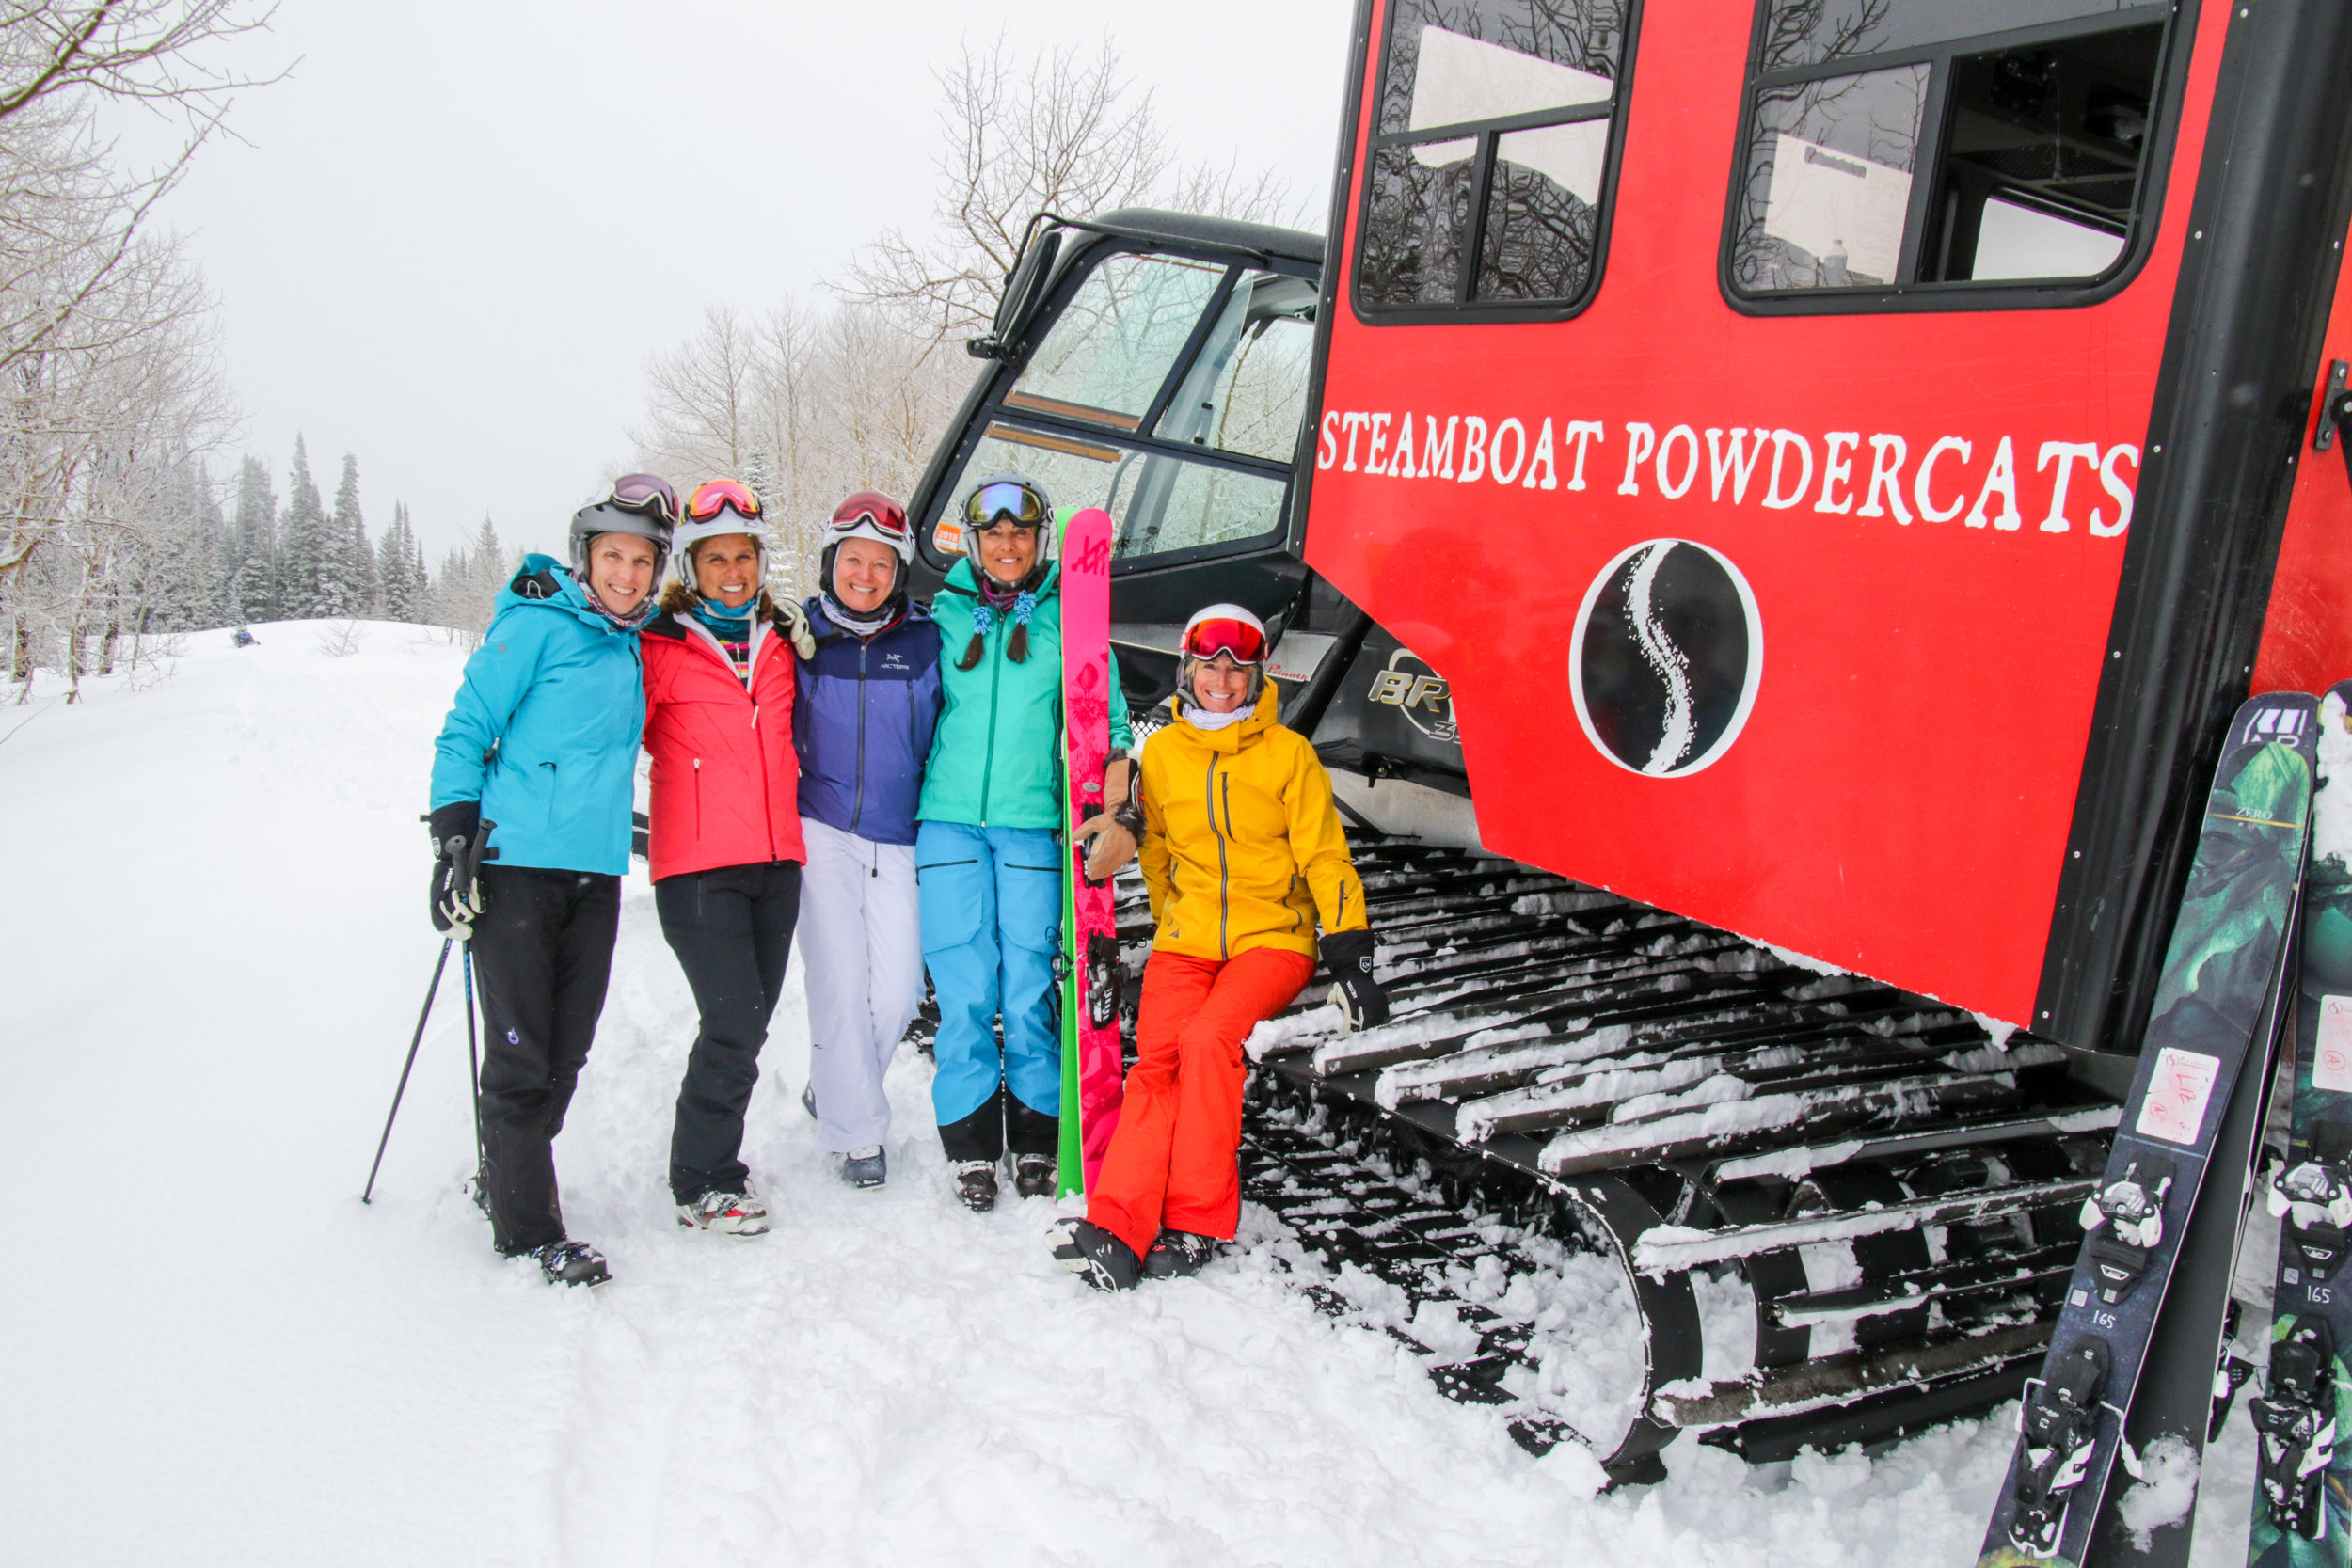 Quick photo break from powdercat skiing with the ladies in Steamboat.